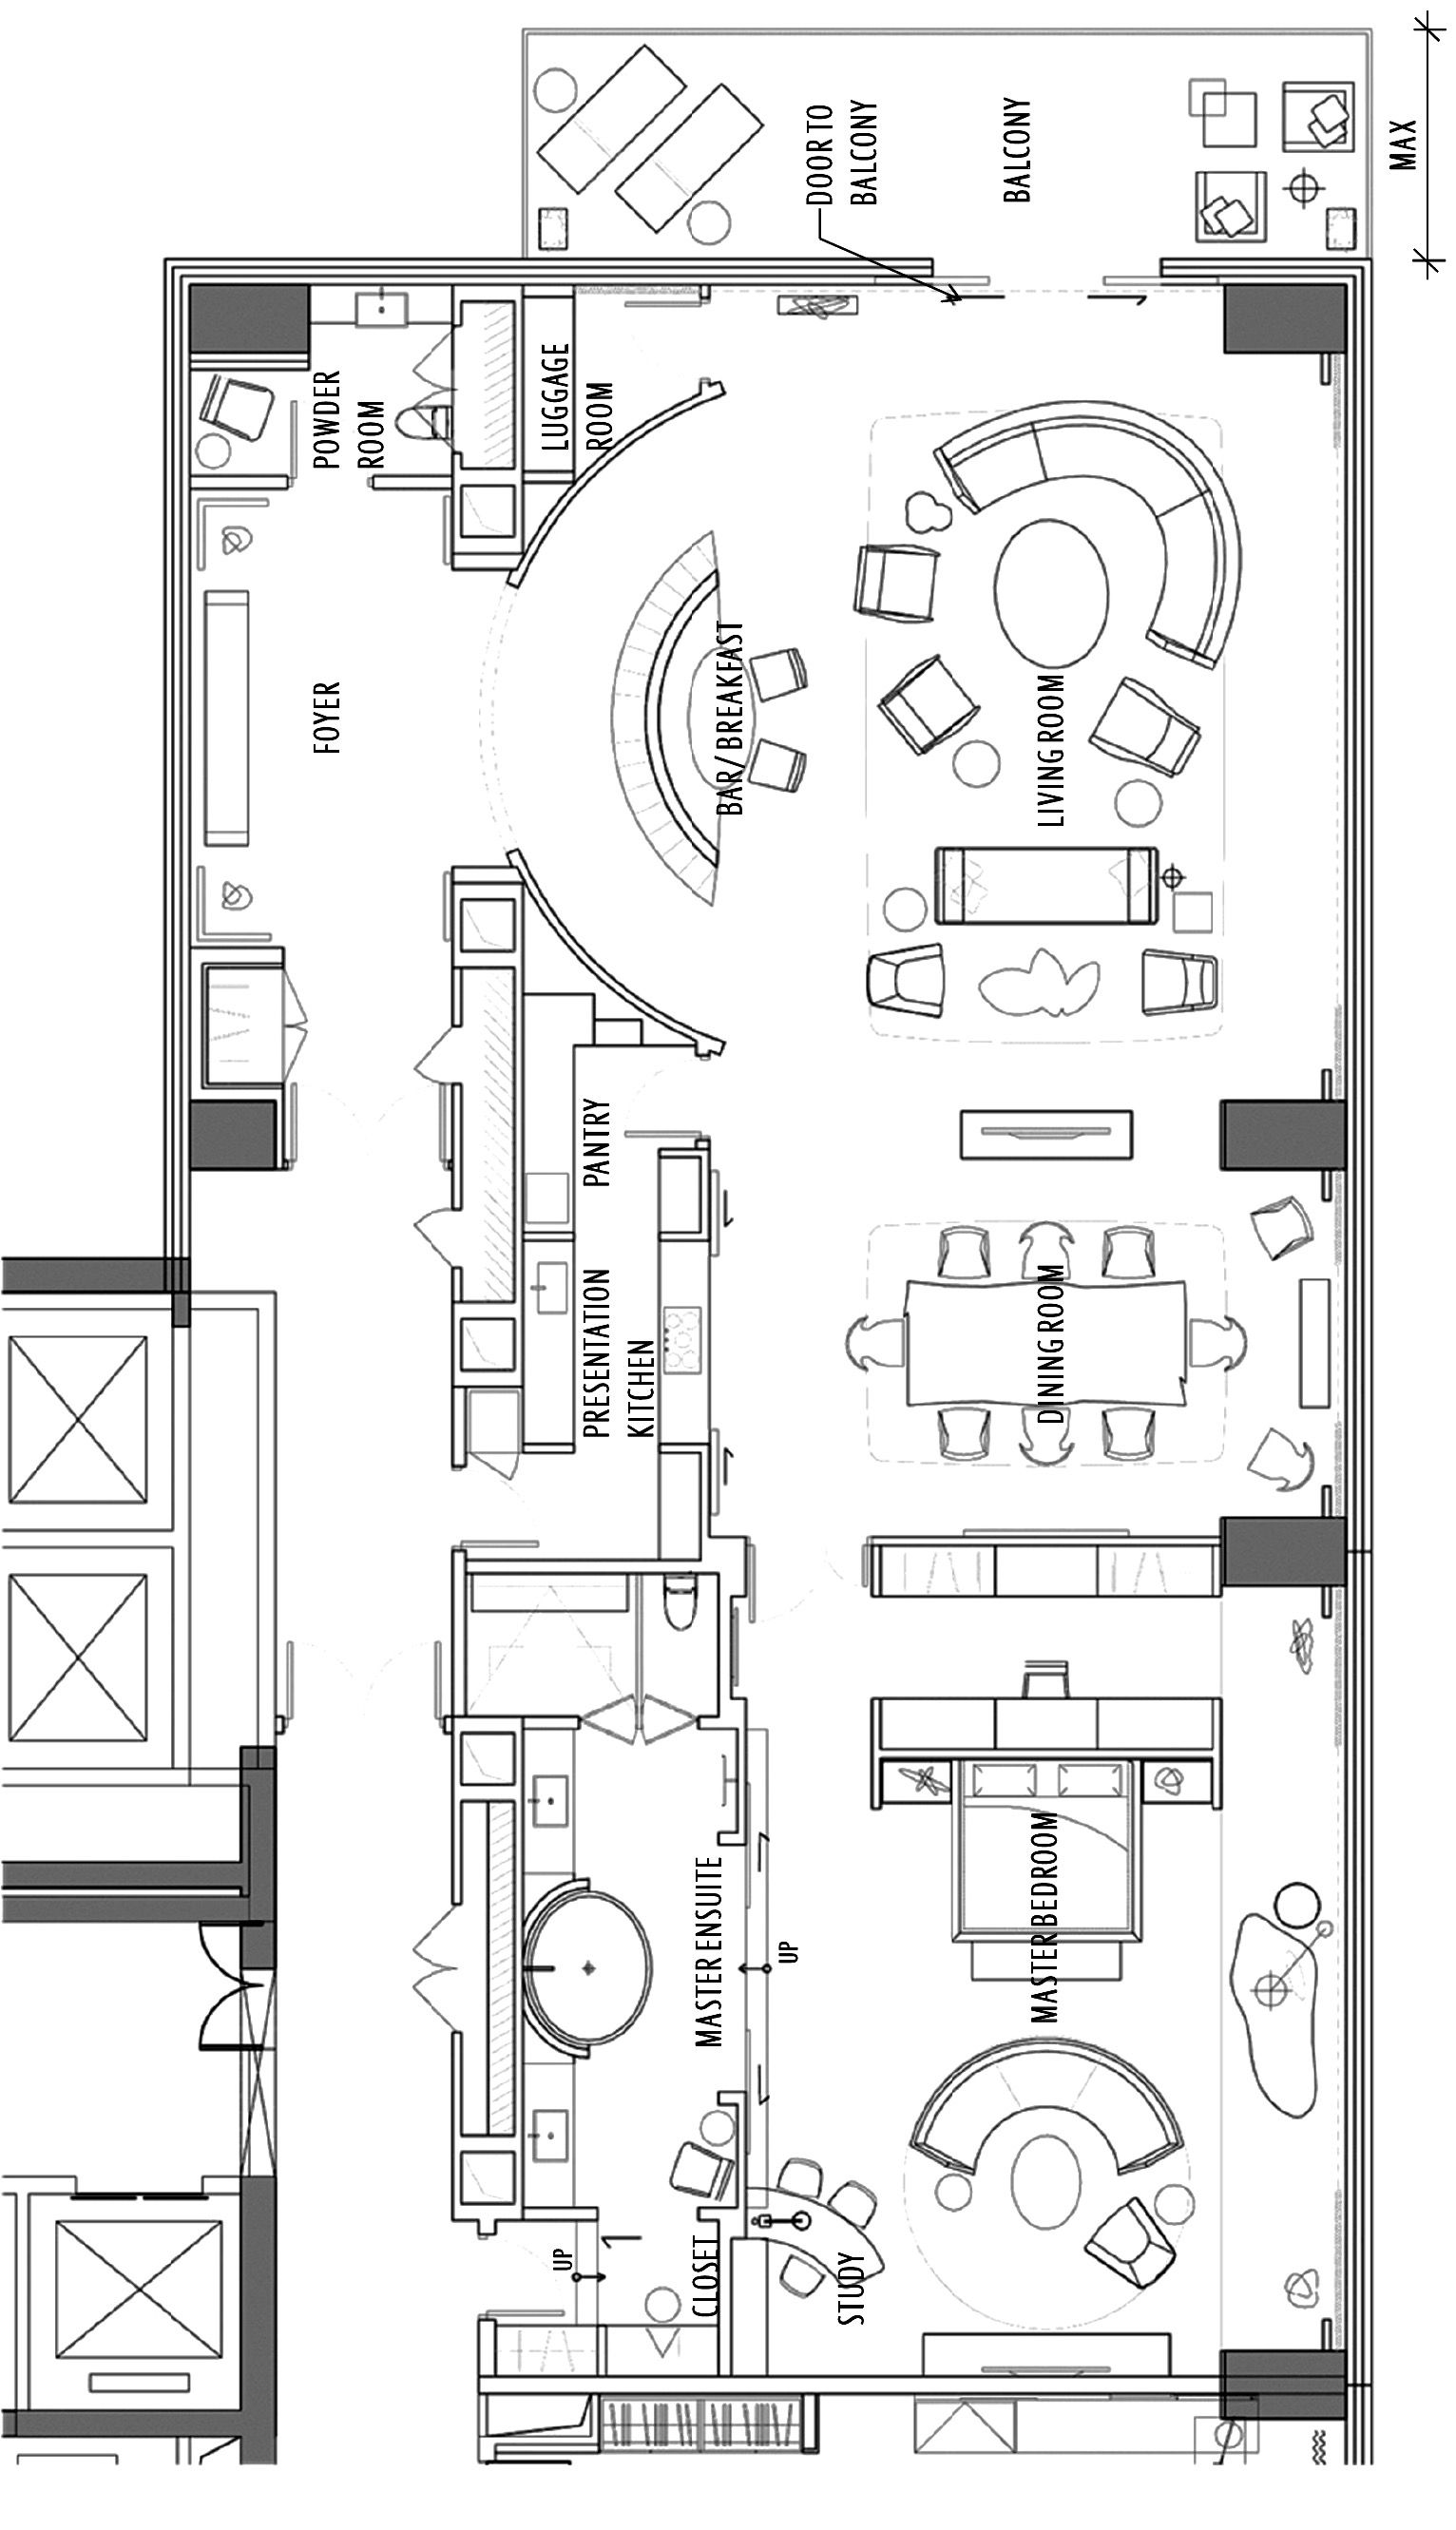 W Hotel Chengdu E Wow Suite Hotel Floor Plan Hotel Room Design Plan Floor Plan Design